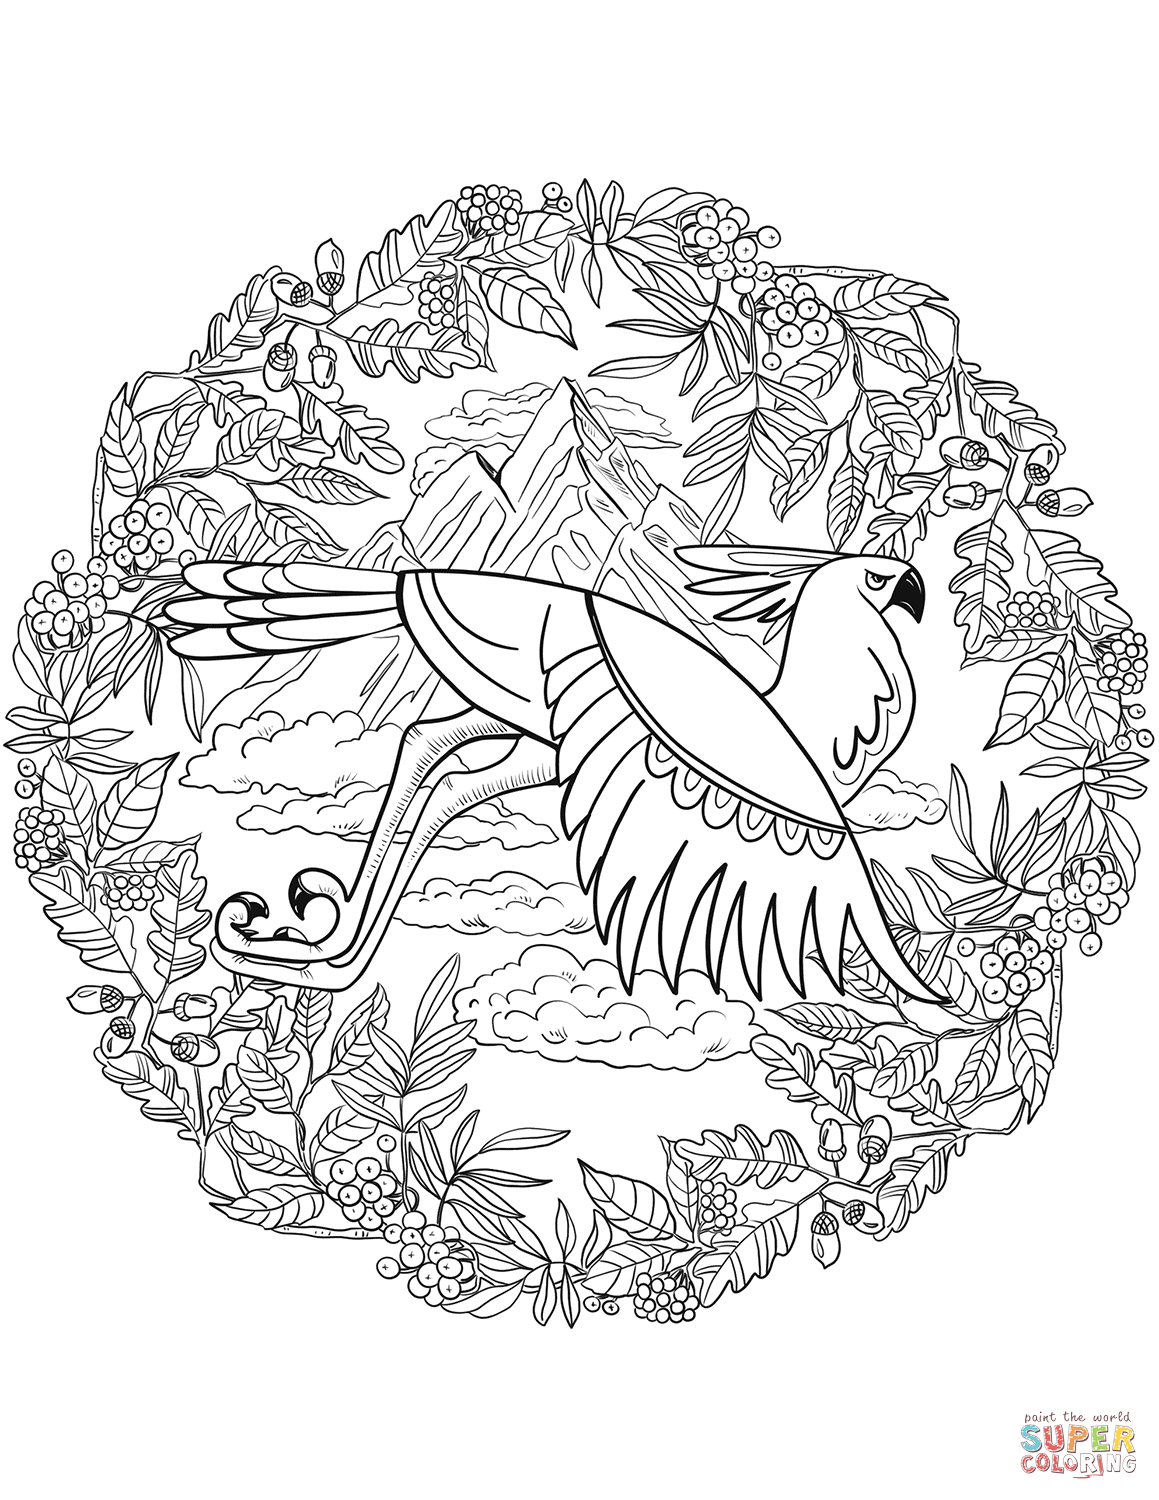 25+ Inspiration Image of Animal Mandala Coloring Pages